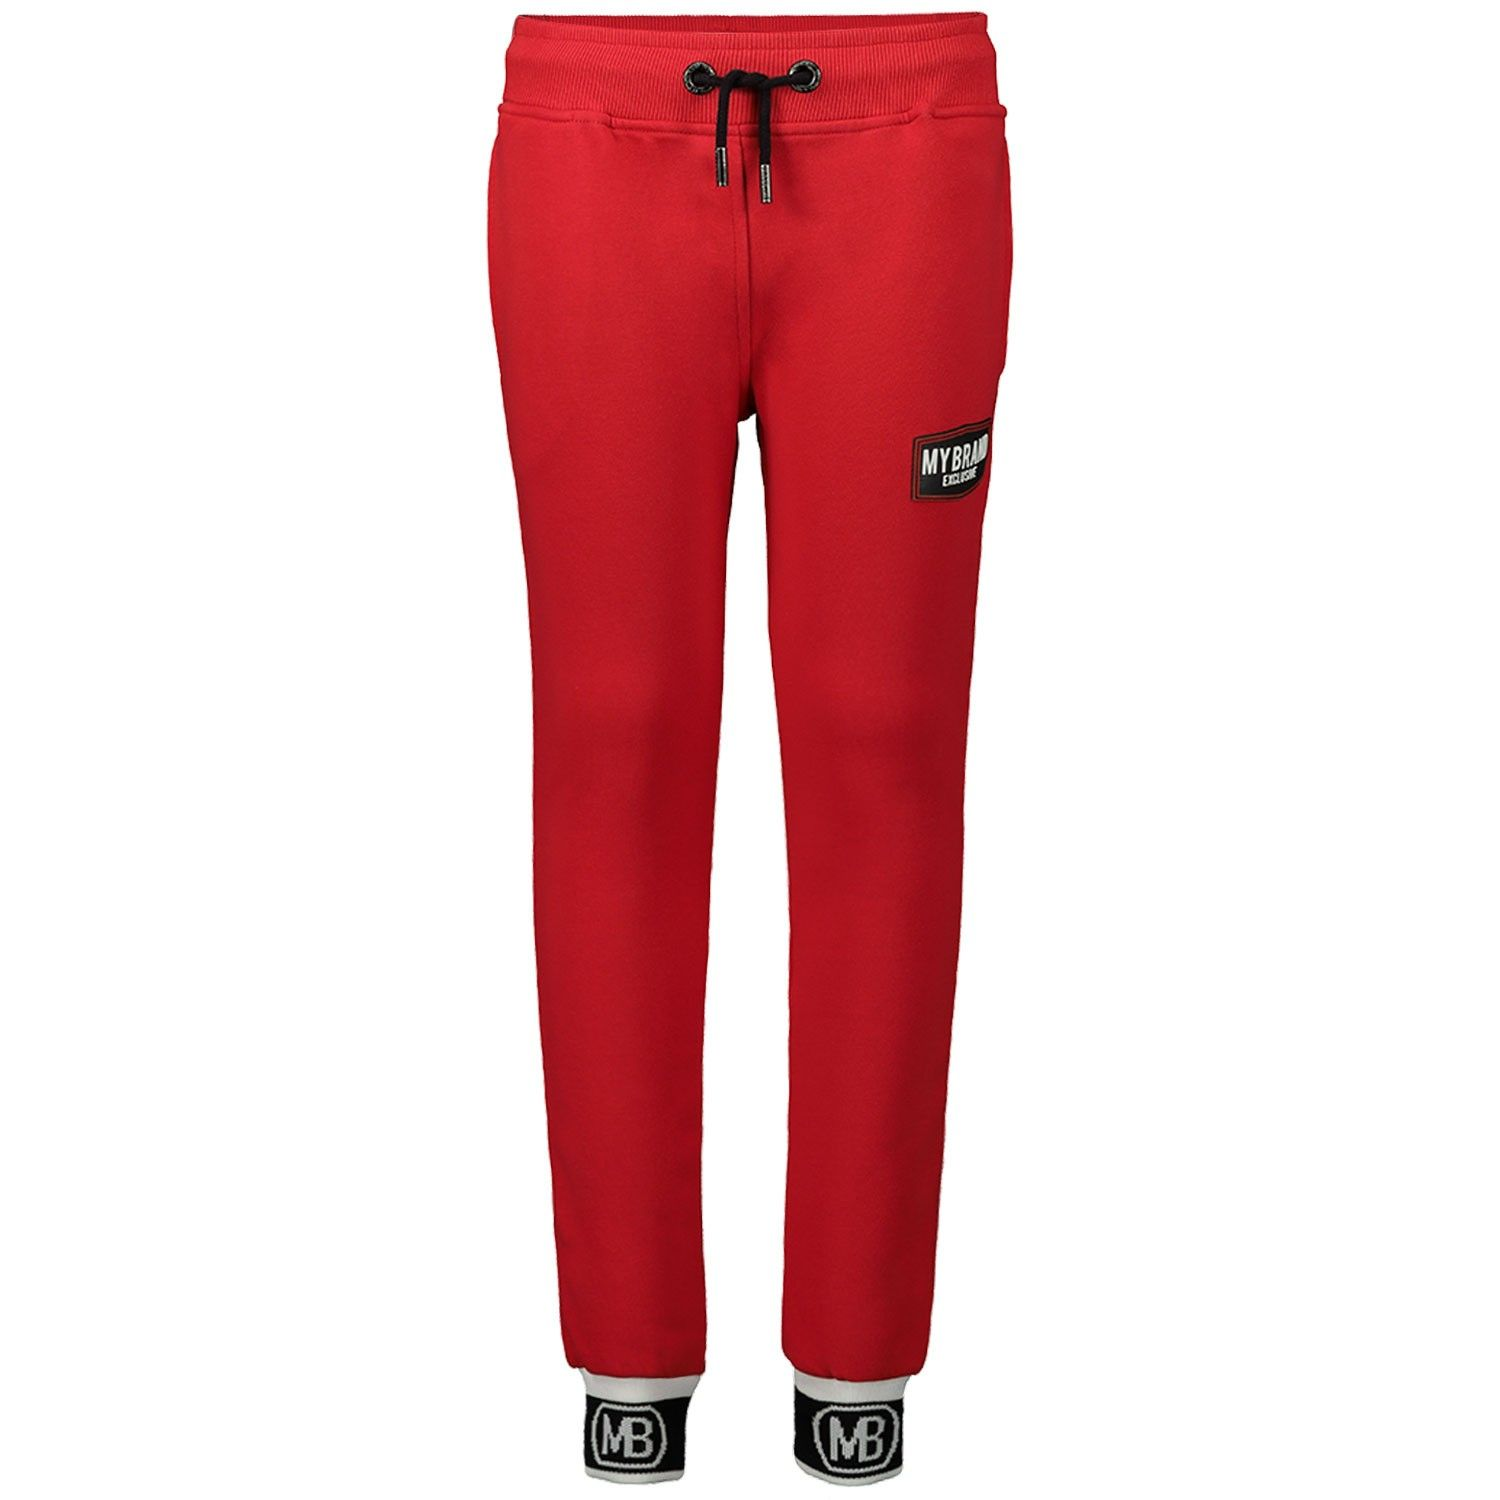 Picture of My Brand BMBJO008G3012 kids jeans red